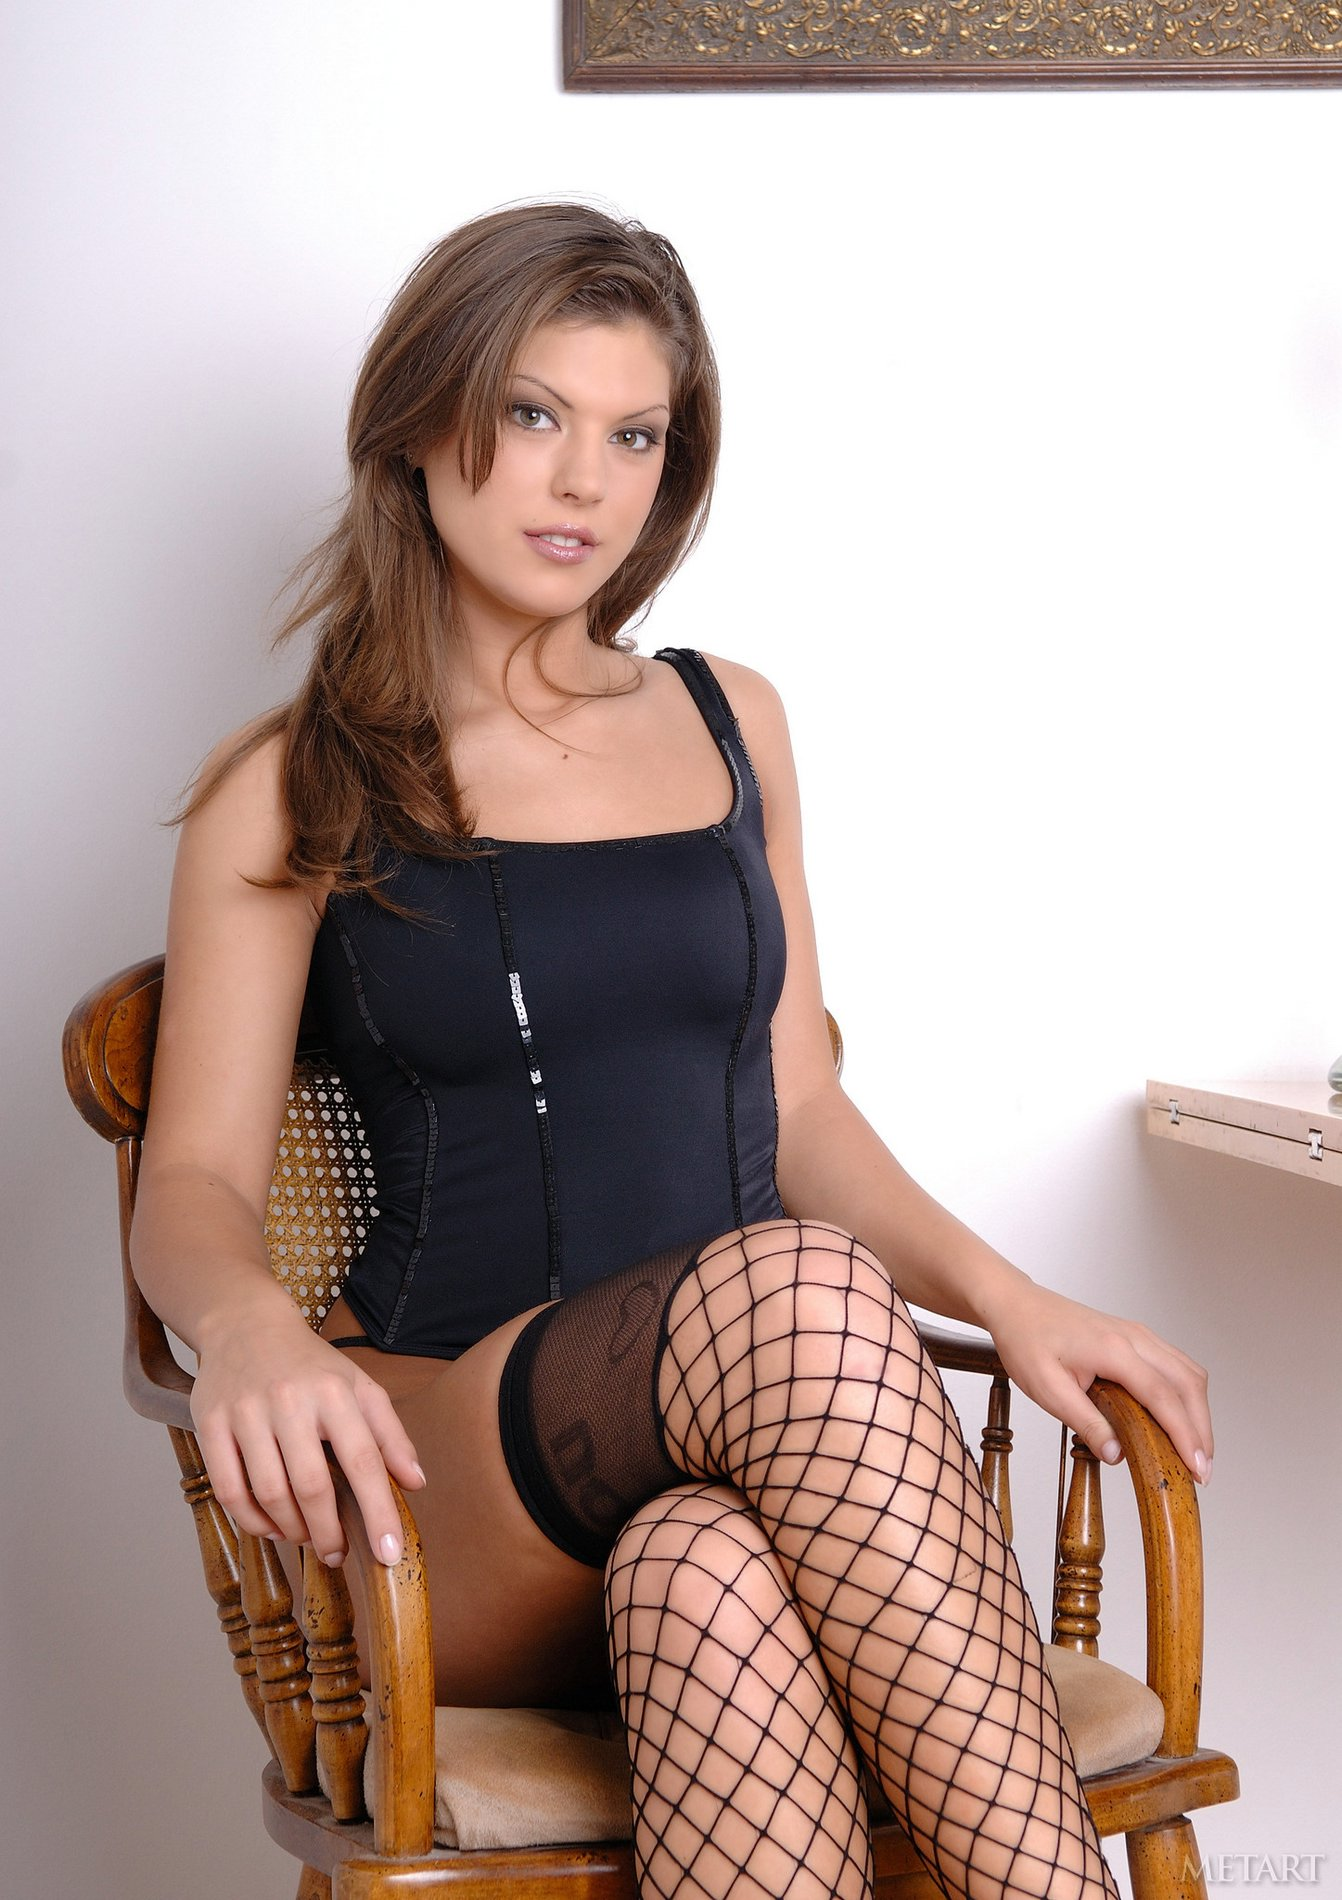 Hannah Hunter in fishnet stockings and sexy shoes poses for you.